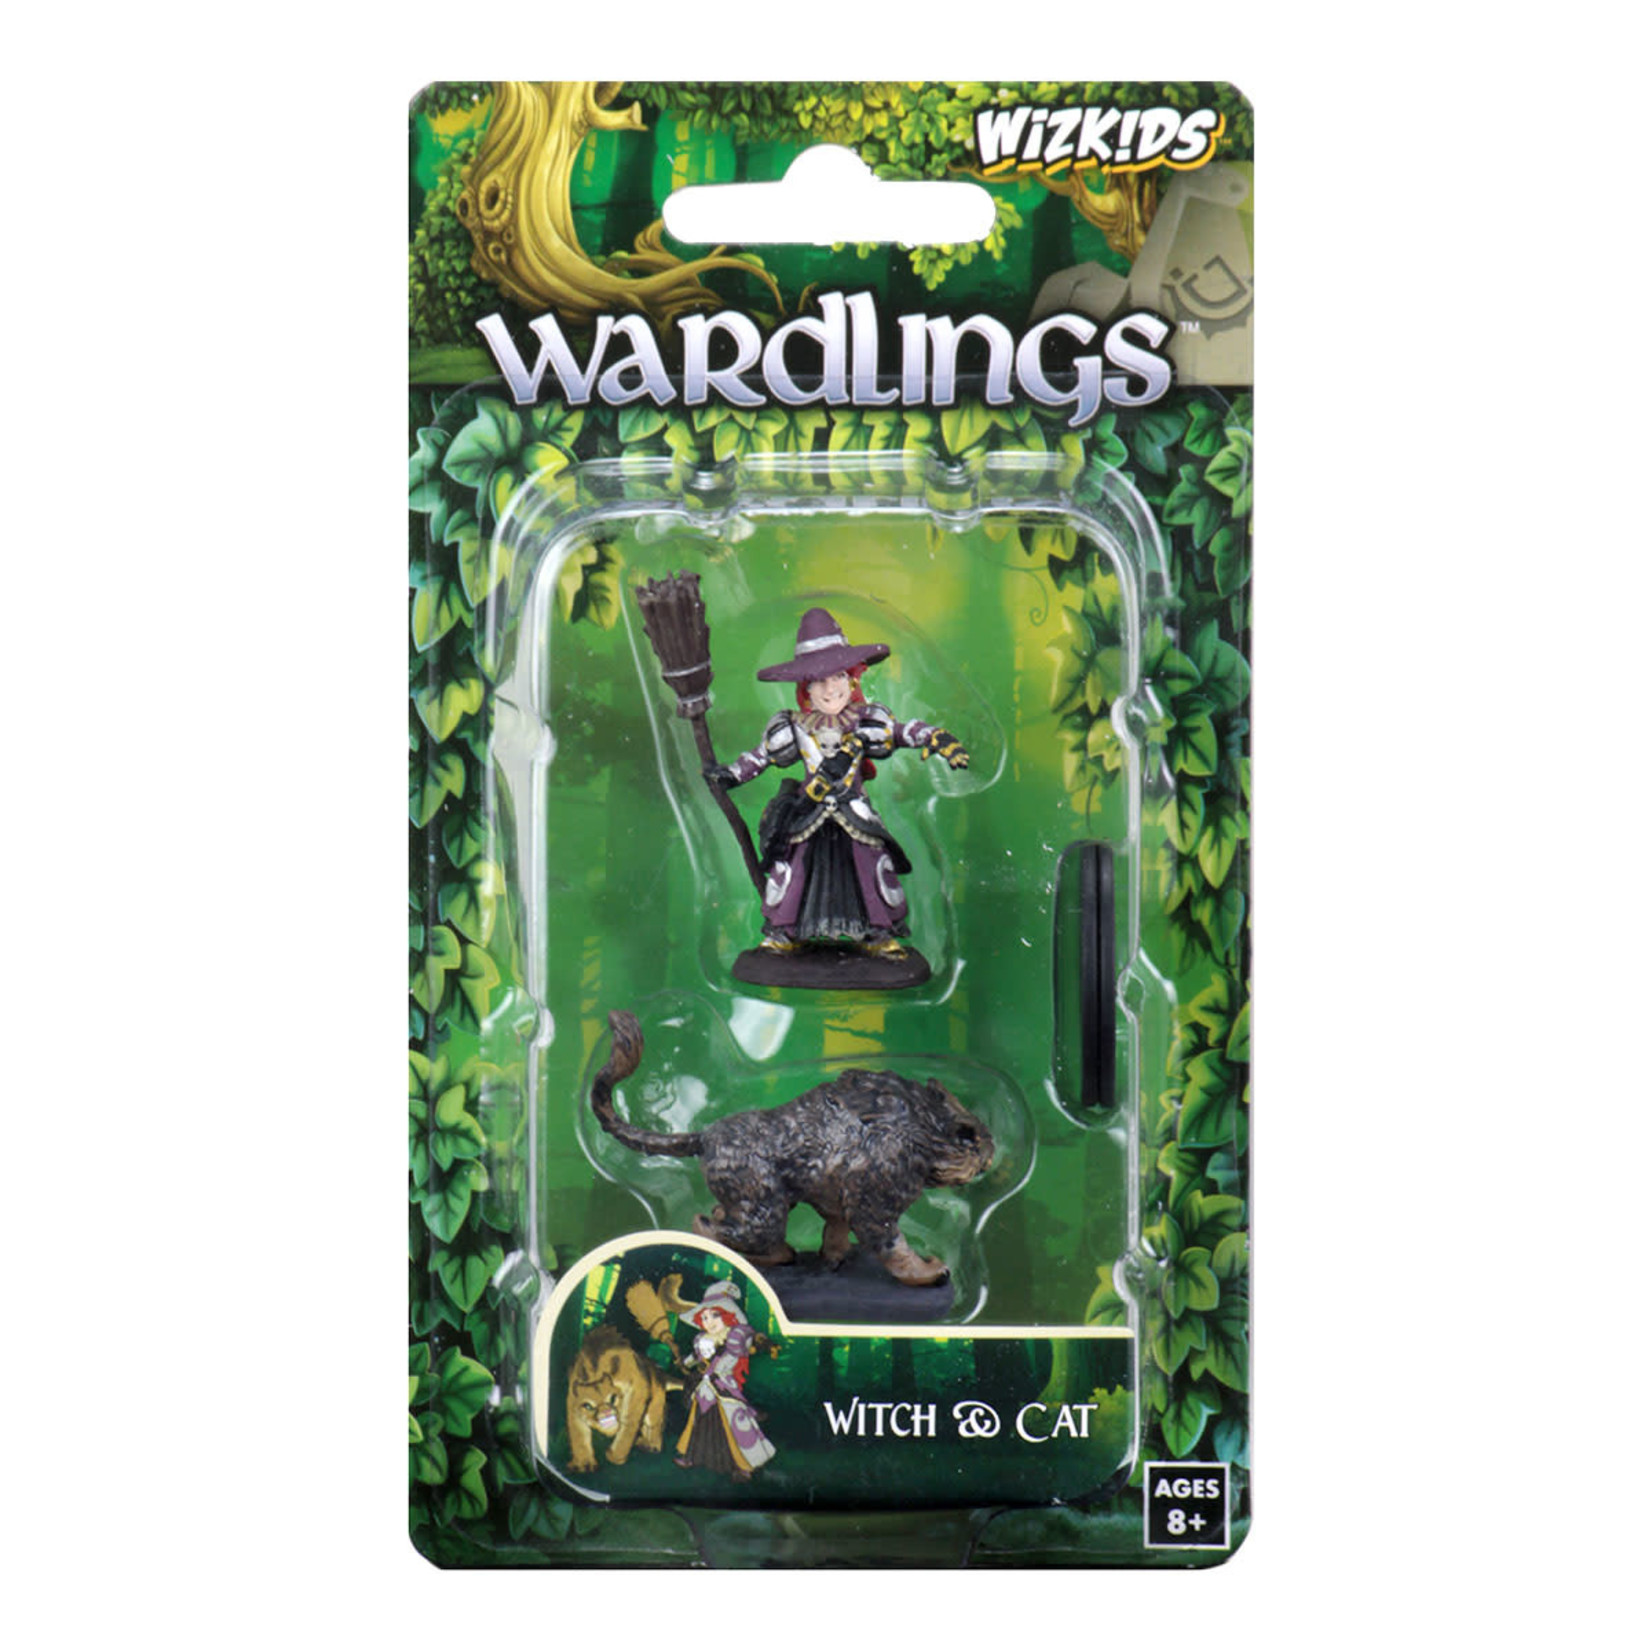 WizKids WizKids Wardlings: Girl Witch & Witch's Cat (W3)